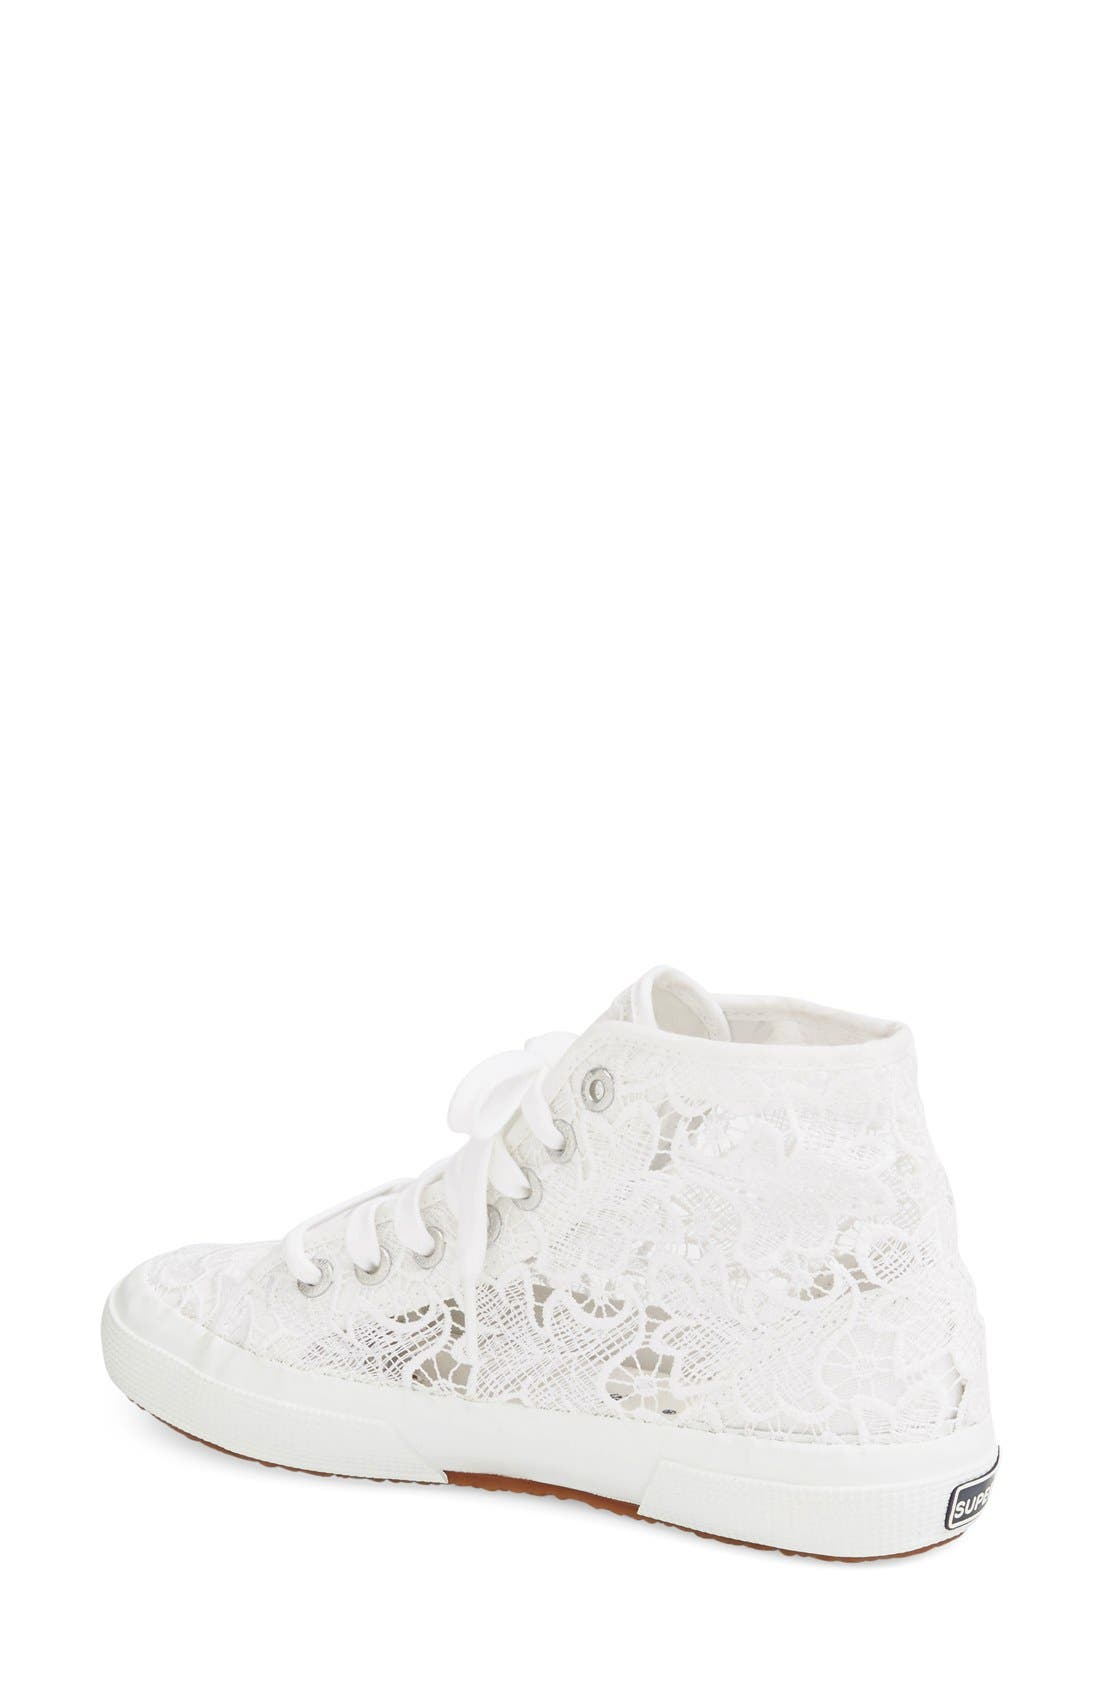 Alternate Image 2  - Superga 'Macramew' High Top Sneaker (Women)